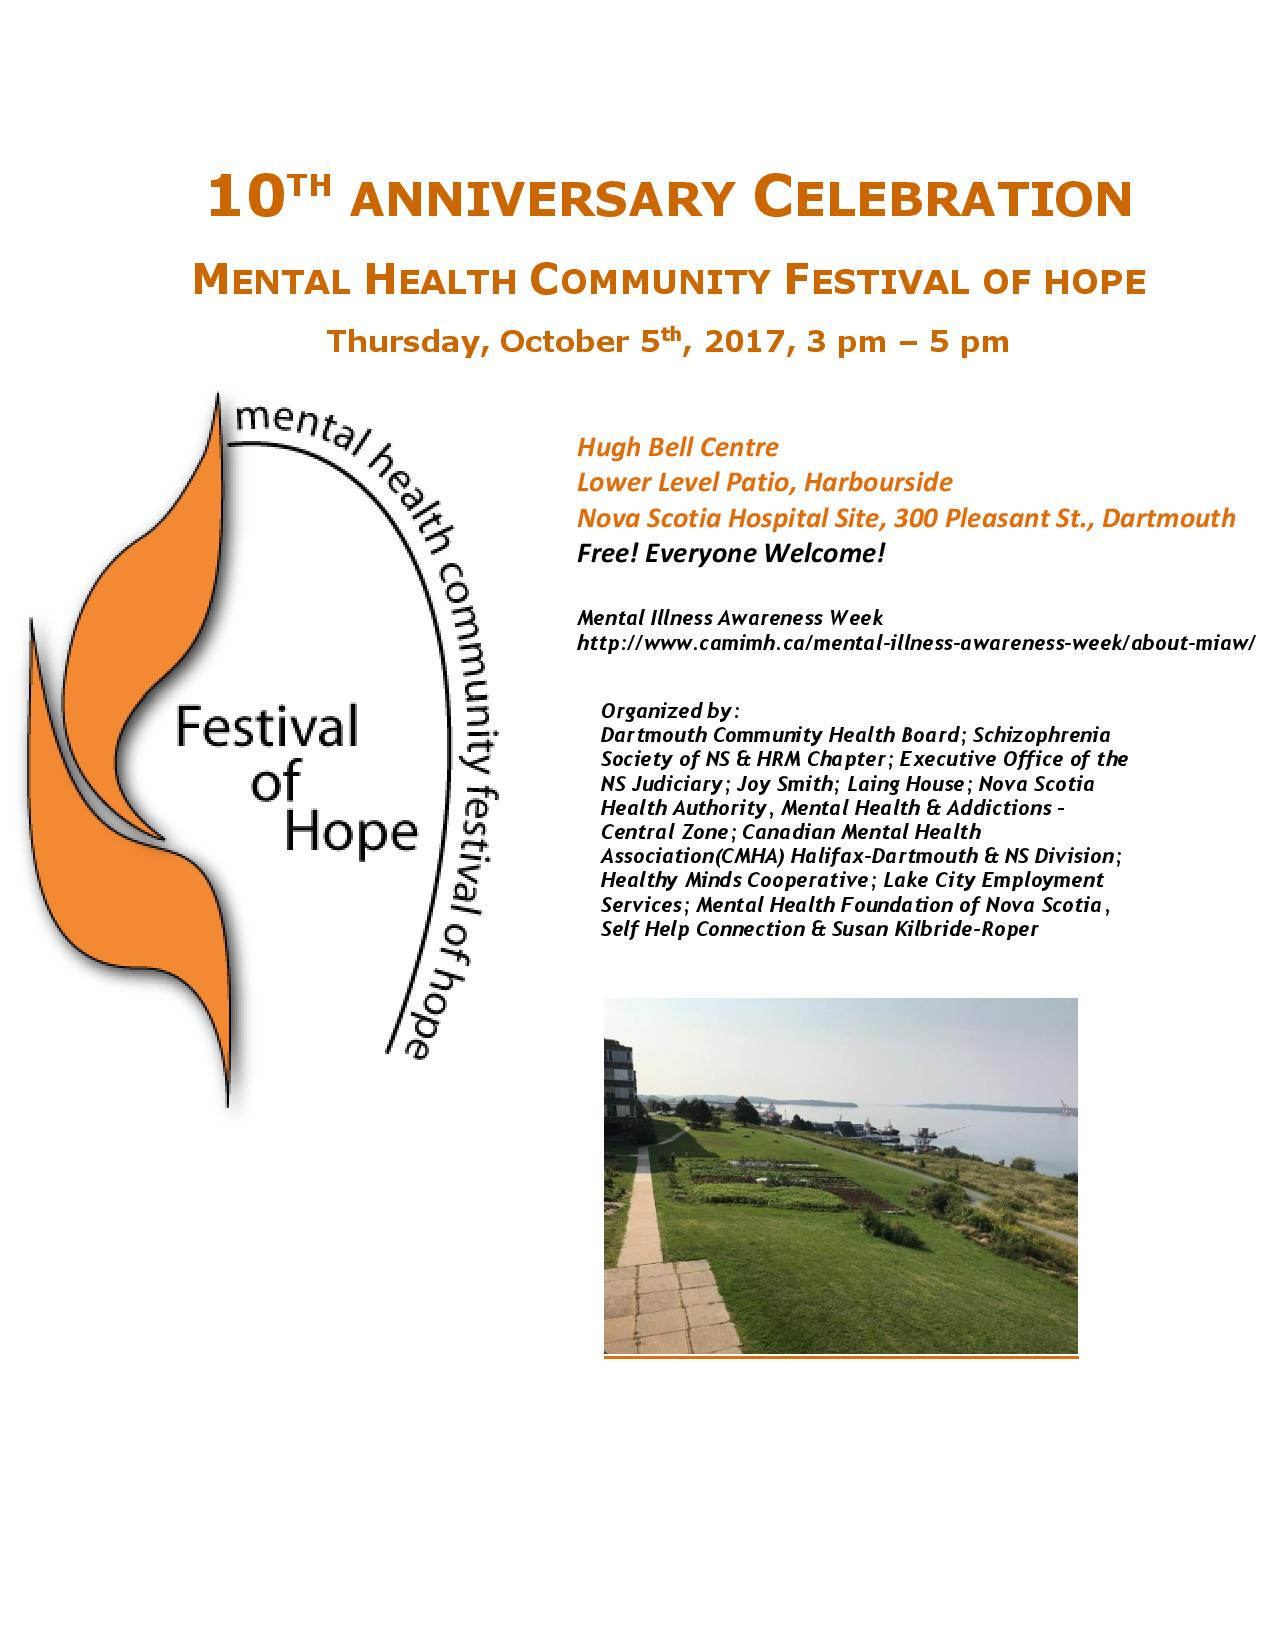 Festival of Hope Flyer #2, Oct. 5, 2017-page-001.jpg